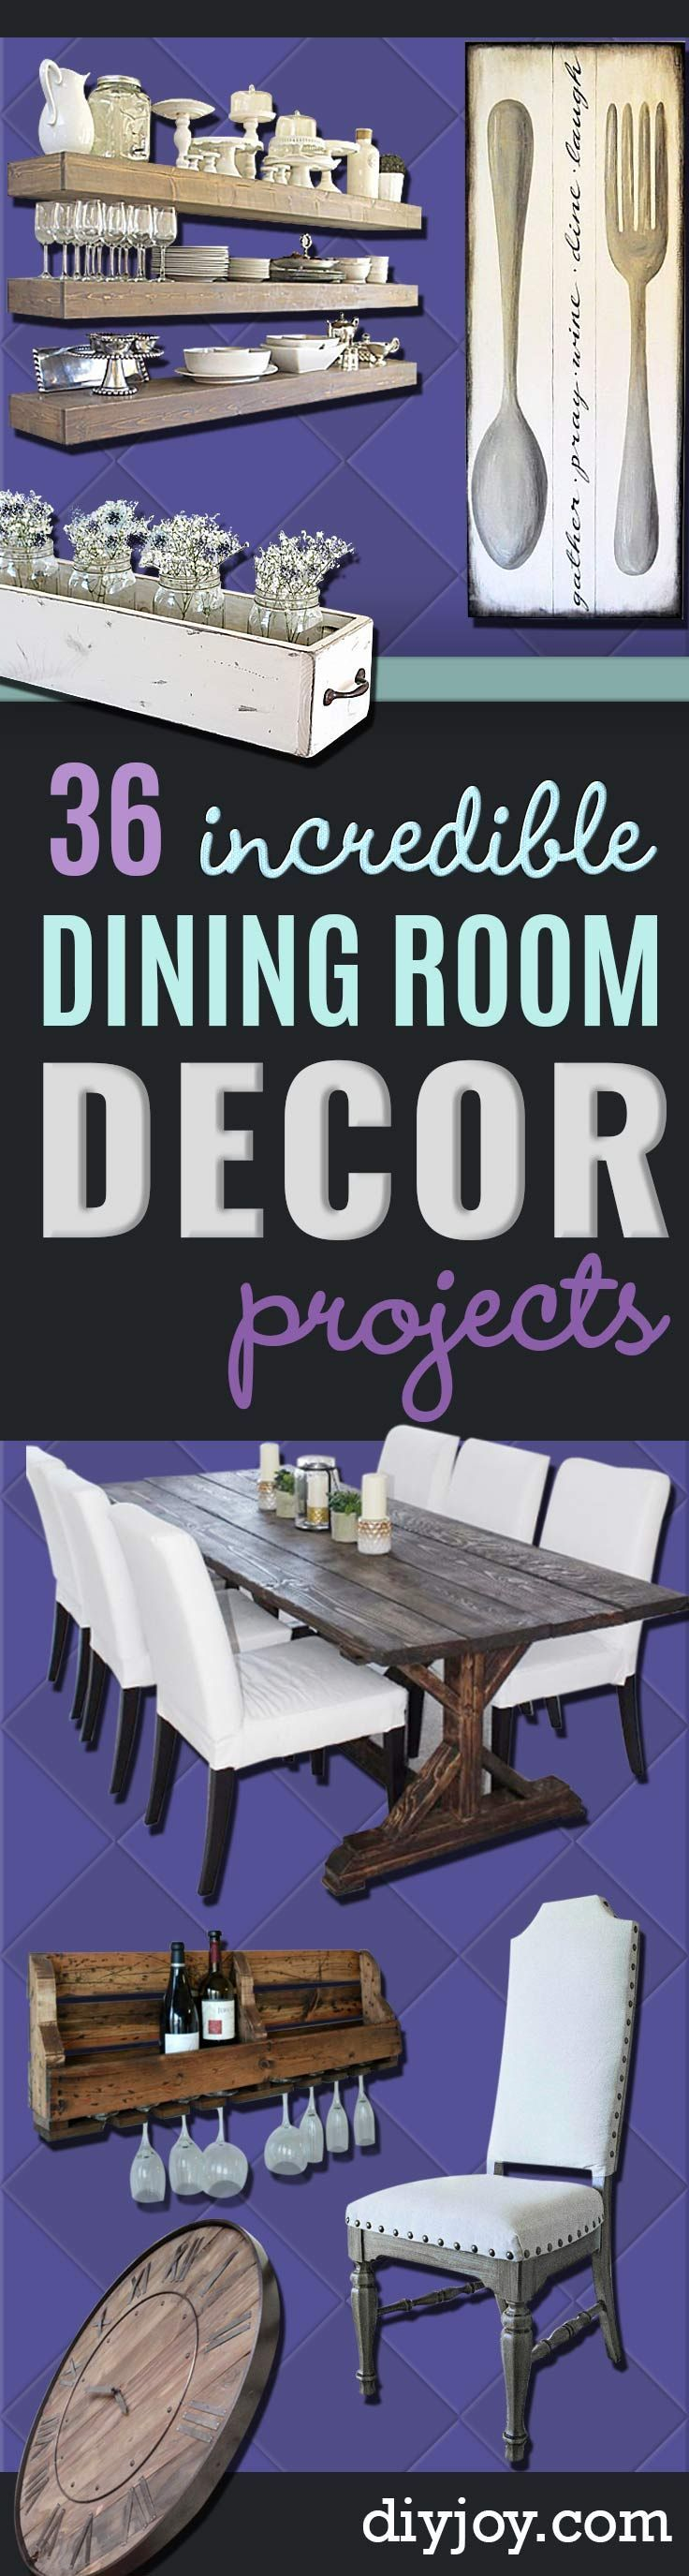 110 best dining room images on pinterest home kitchen and diy